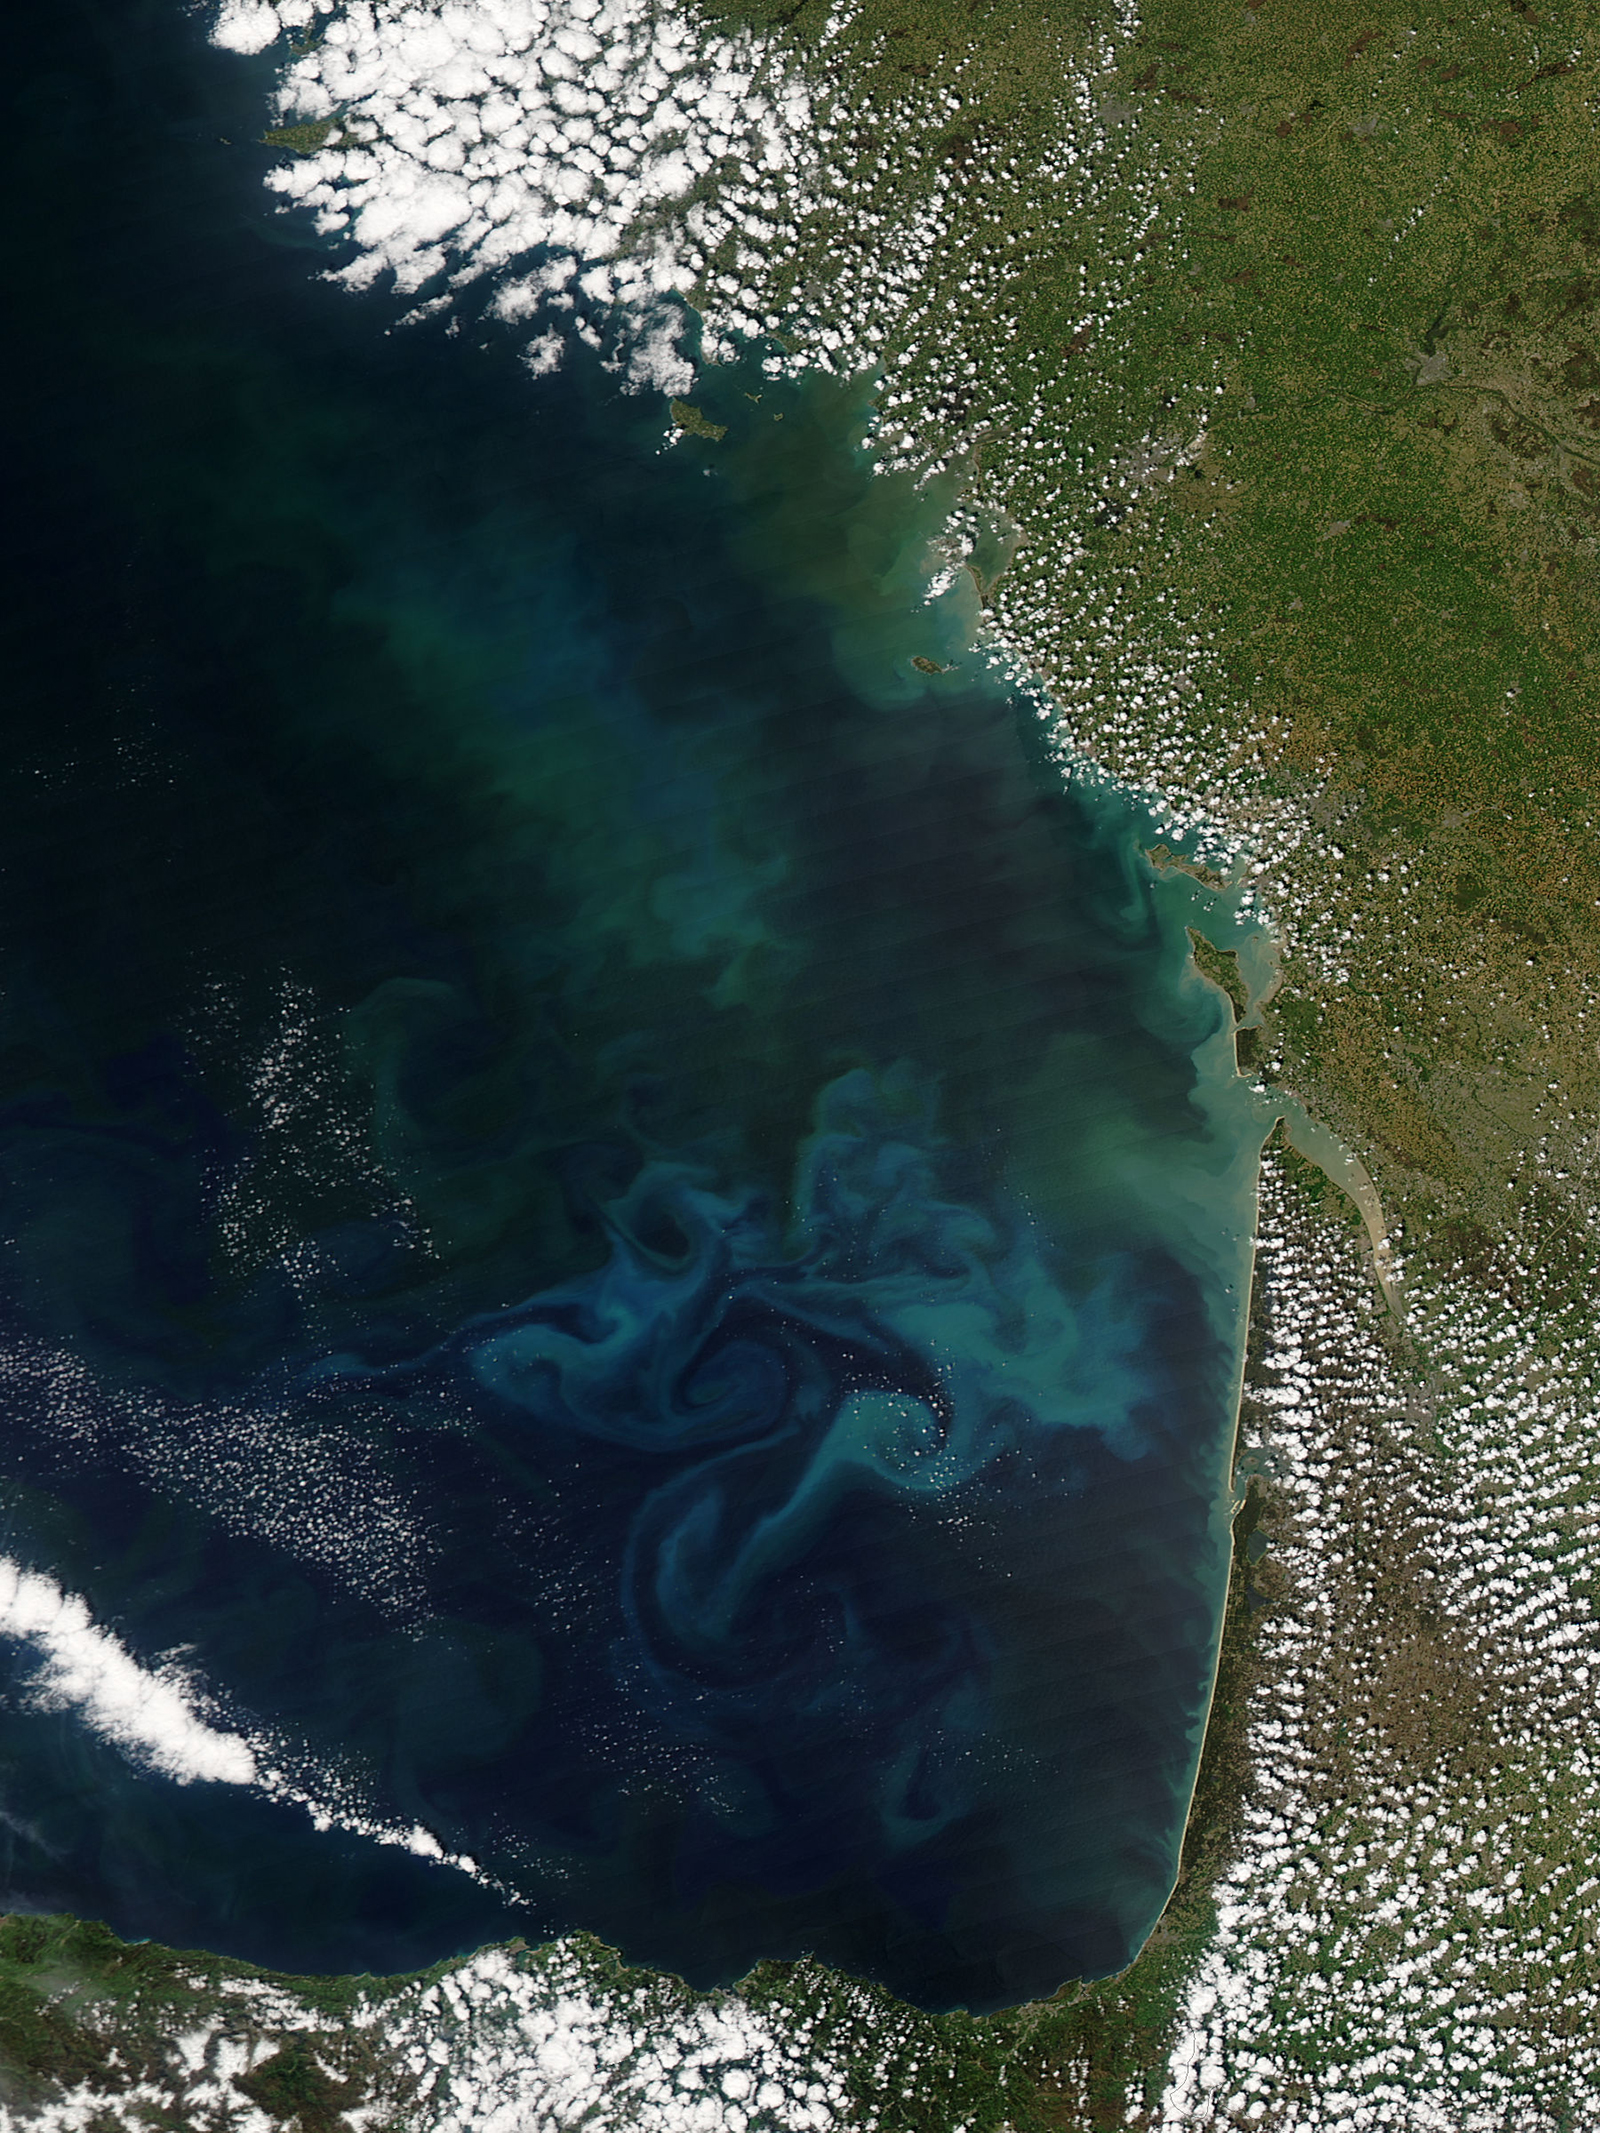 Springtime in the bay of biscay nasa springtime in the bay of biscay publicscrutiny Gallery